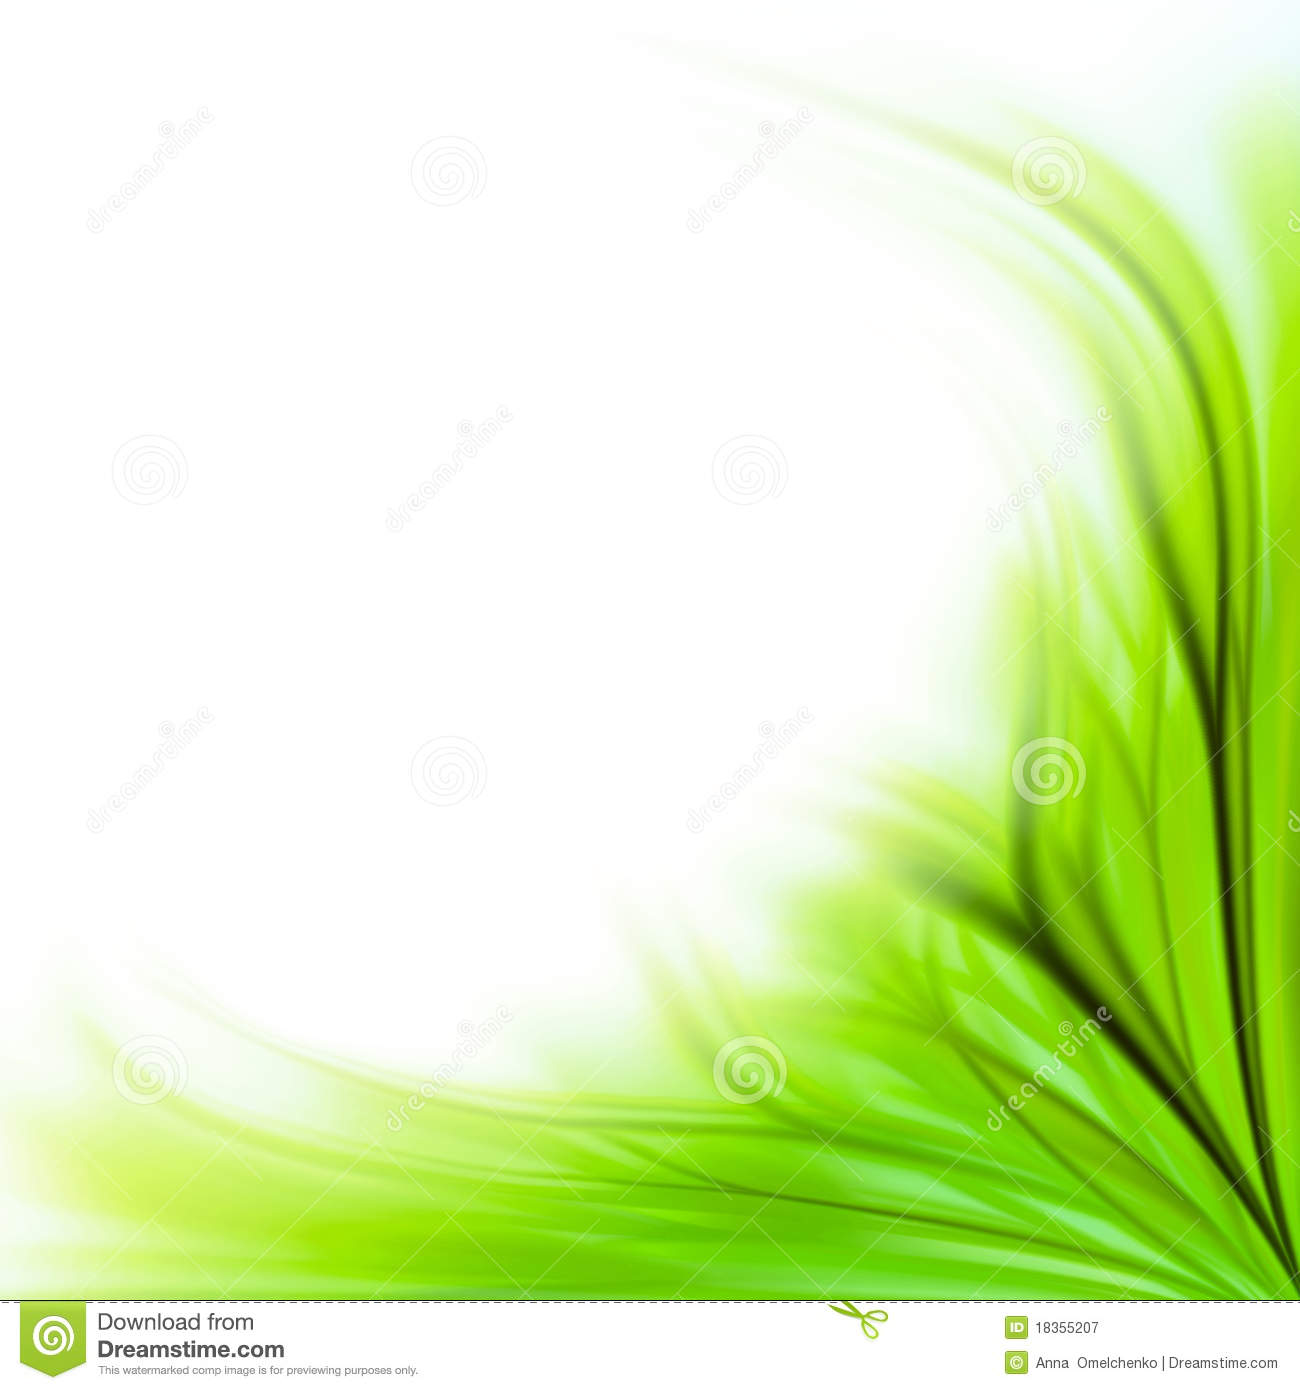 grass outline border clipart panda free clipart images